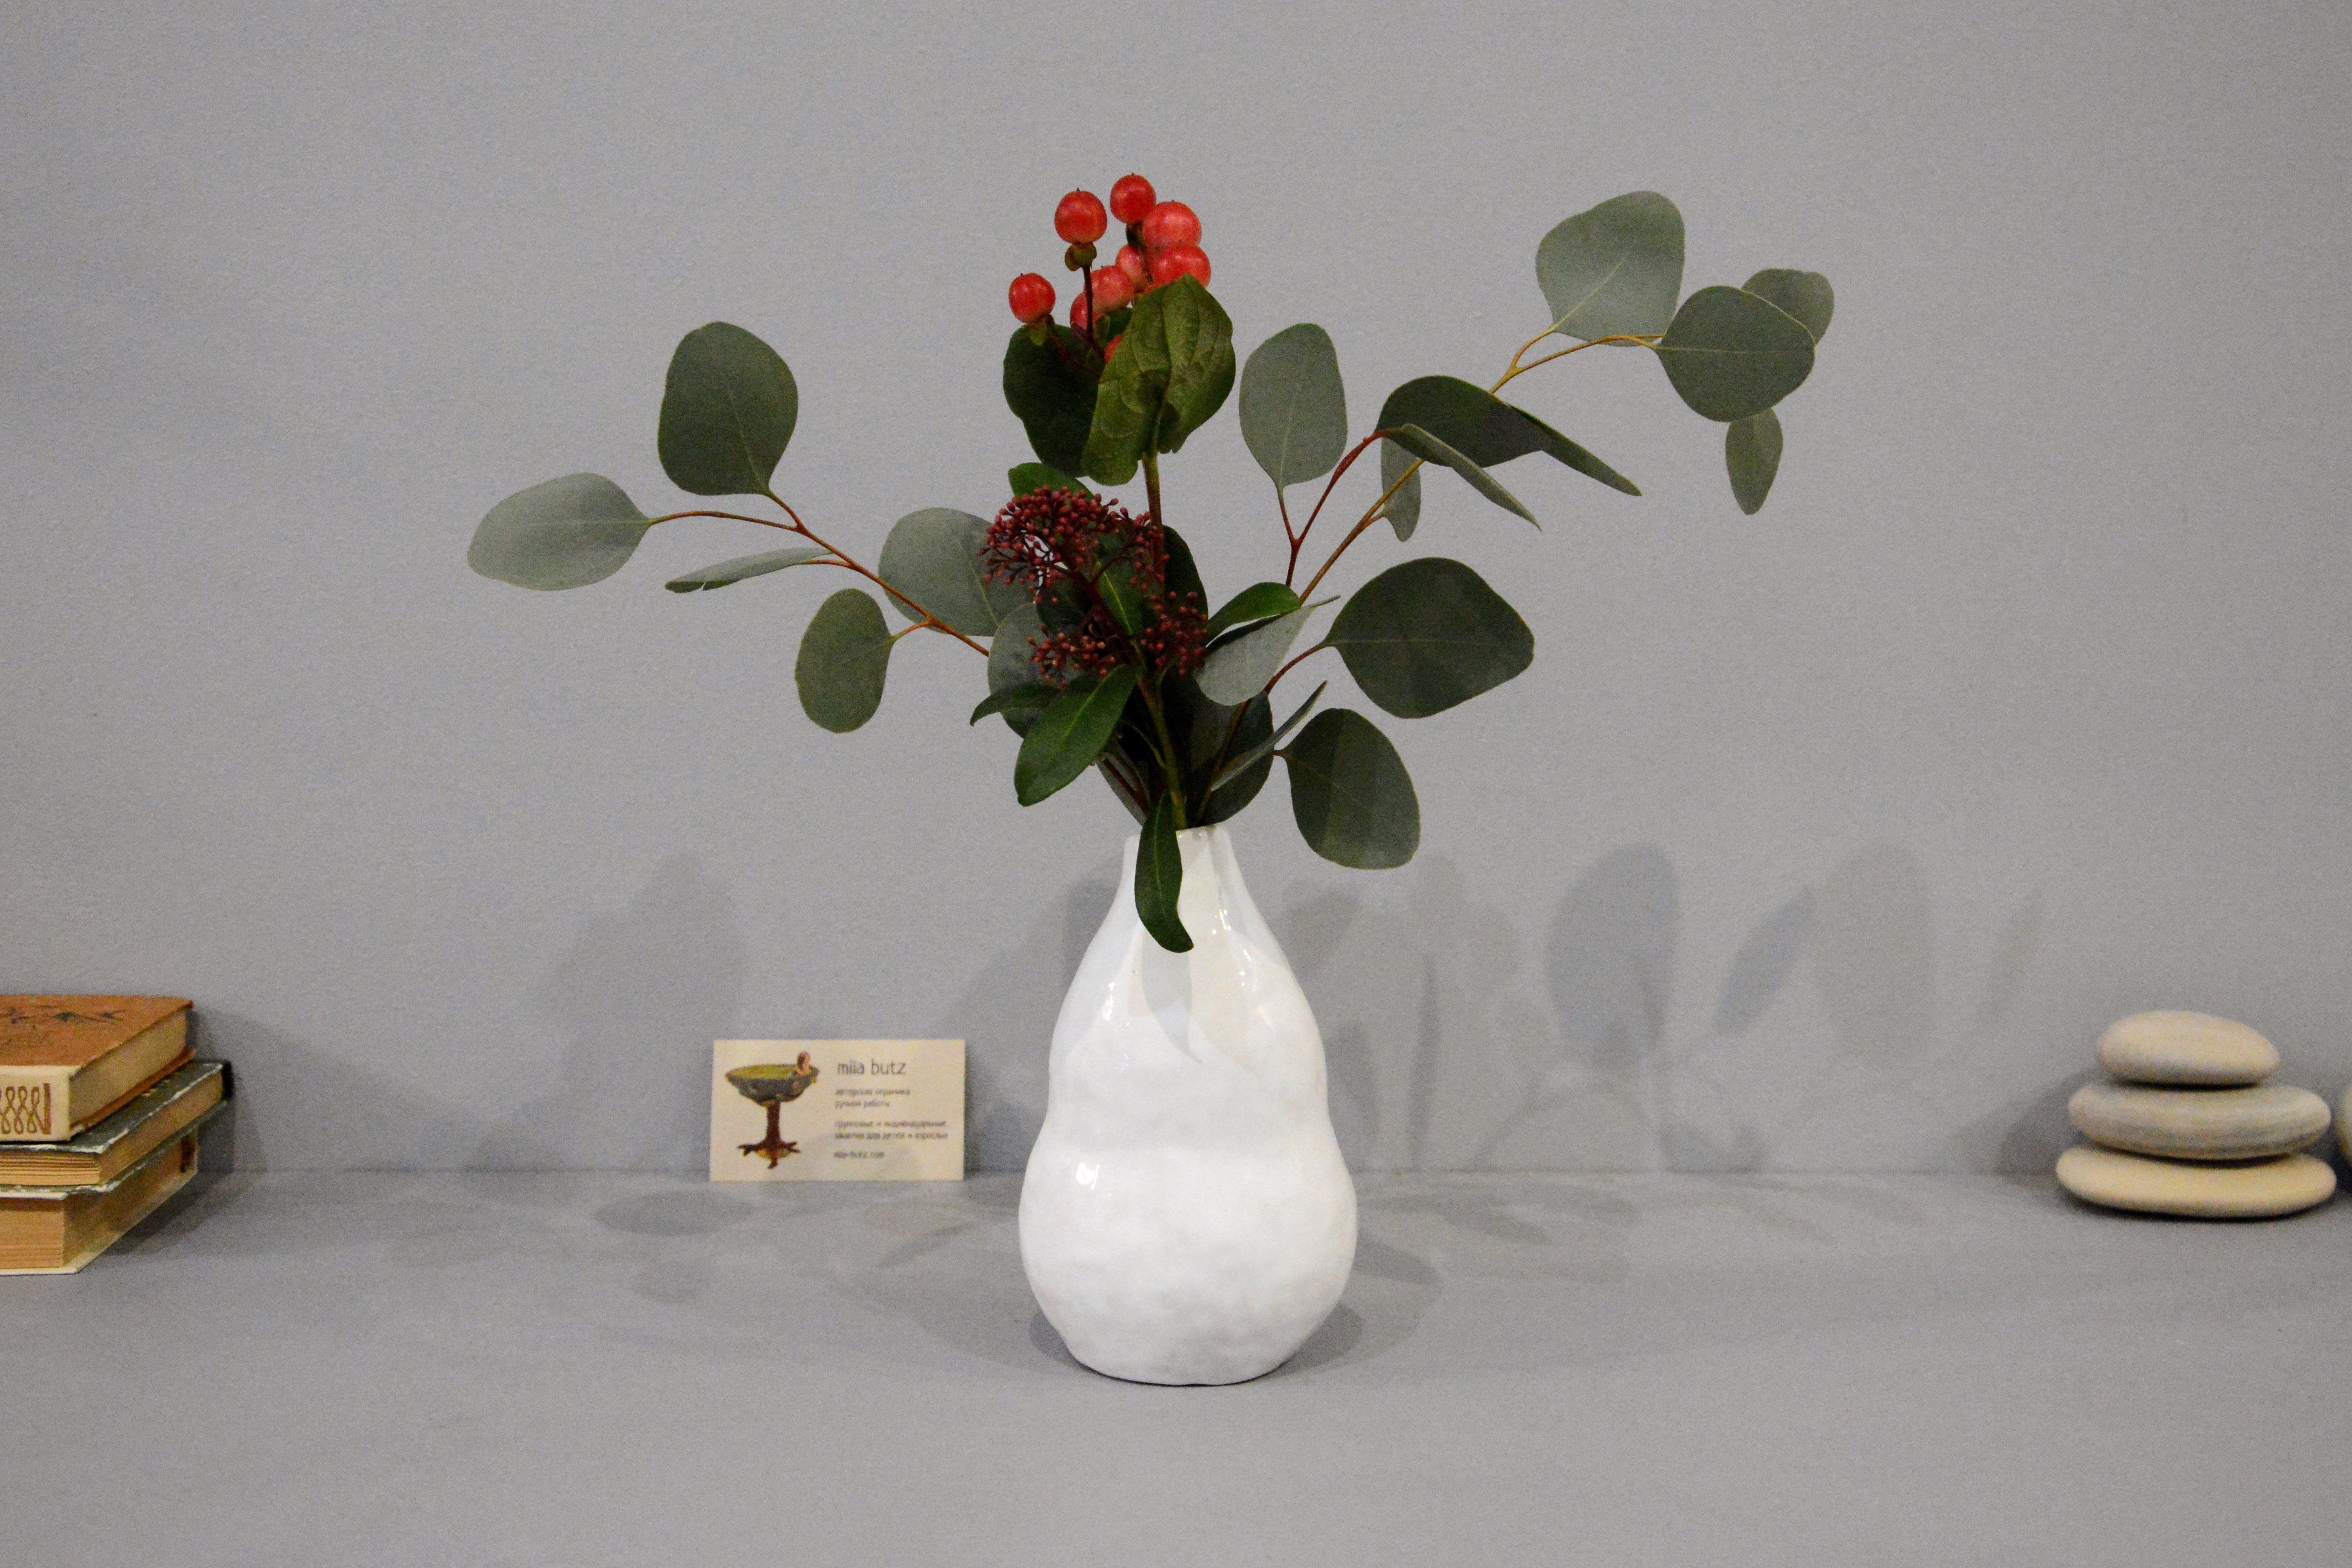 Small Vase or flowers «Echeveria», height - 16 cm, color - white. Photo 1396.